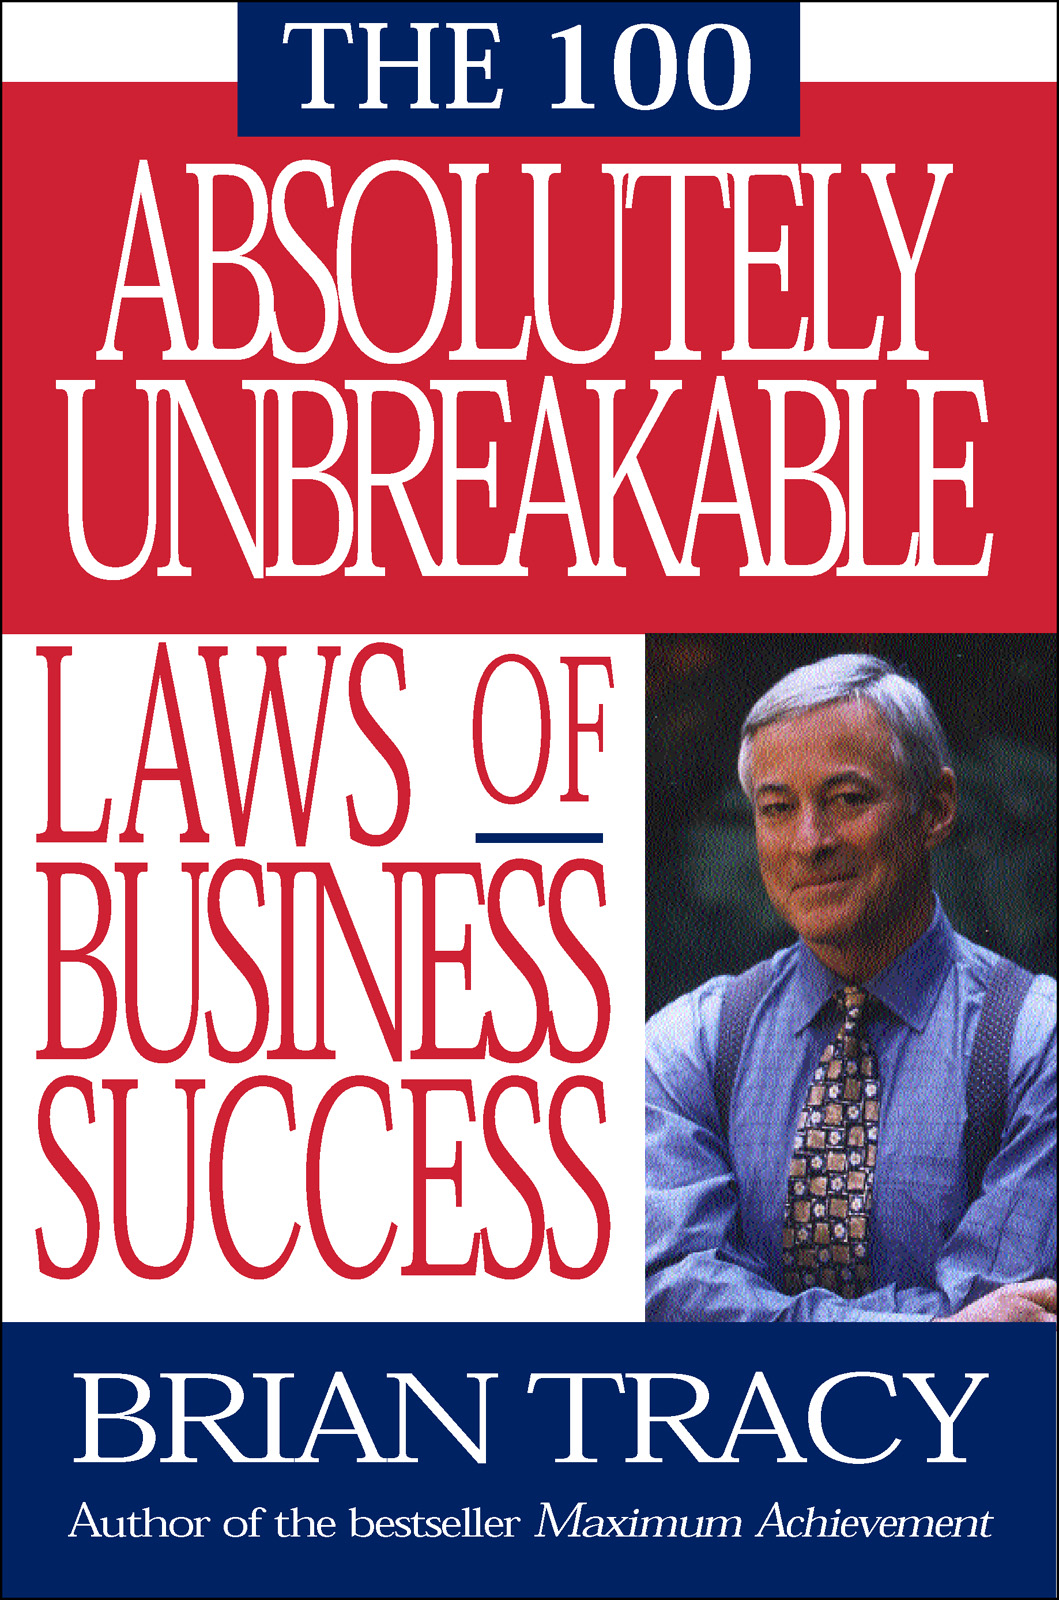 Брайан Трейси 100 Absolutely Unbreakable Laws of Business Success tracy brooker the universal laws of learning